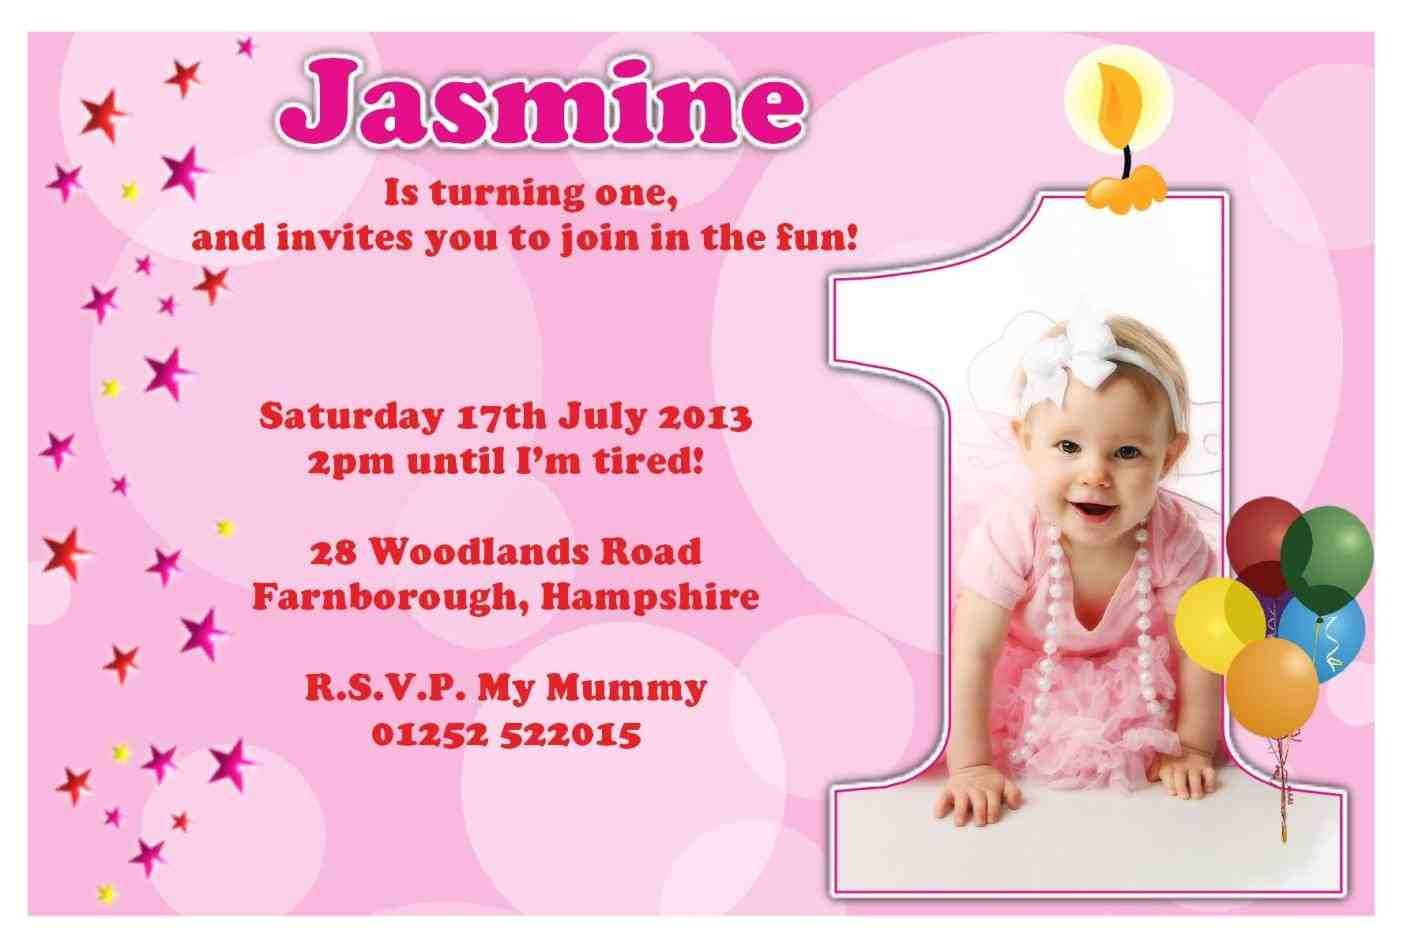 Full Size Of Design90th Birthday Invitation Templates Together With 90th Invitations Online As